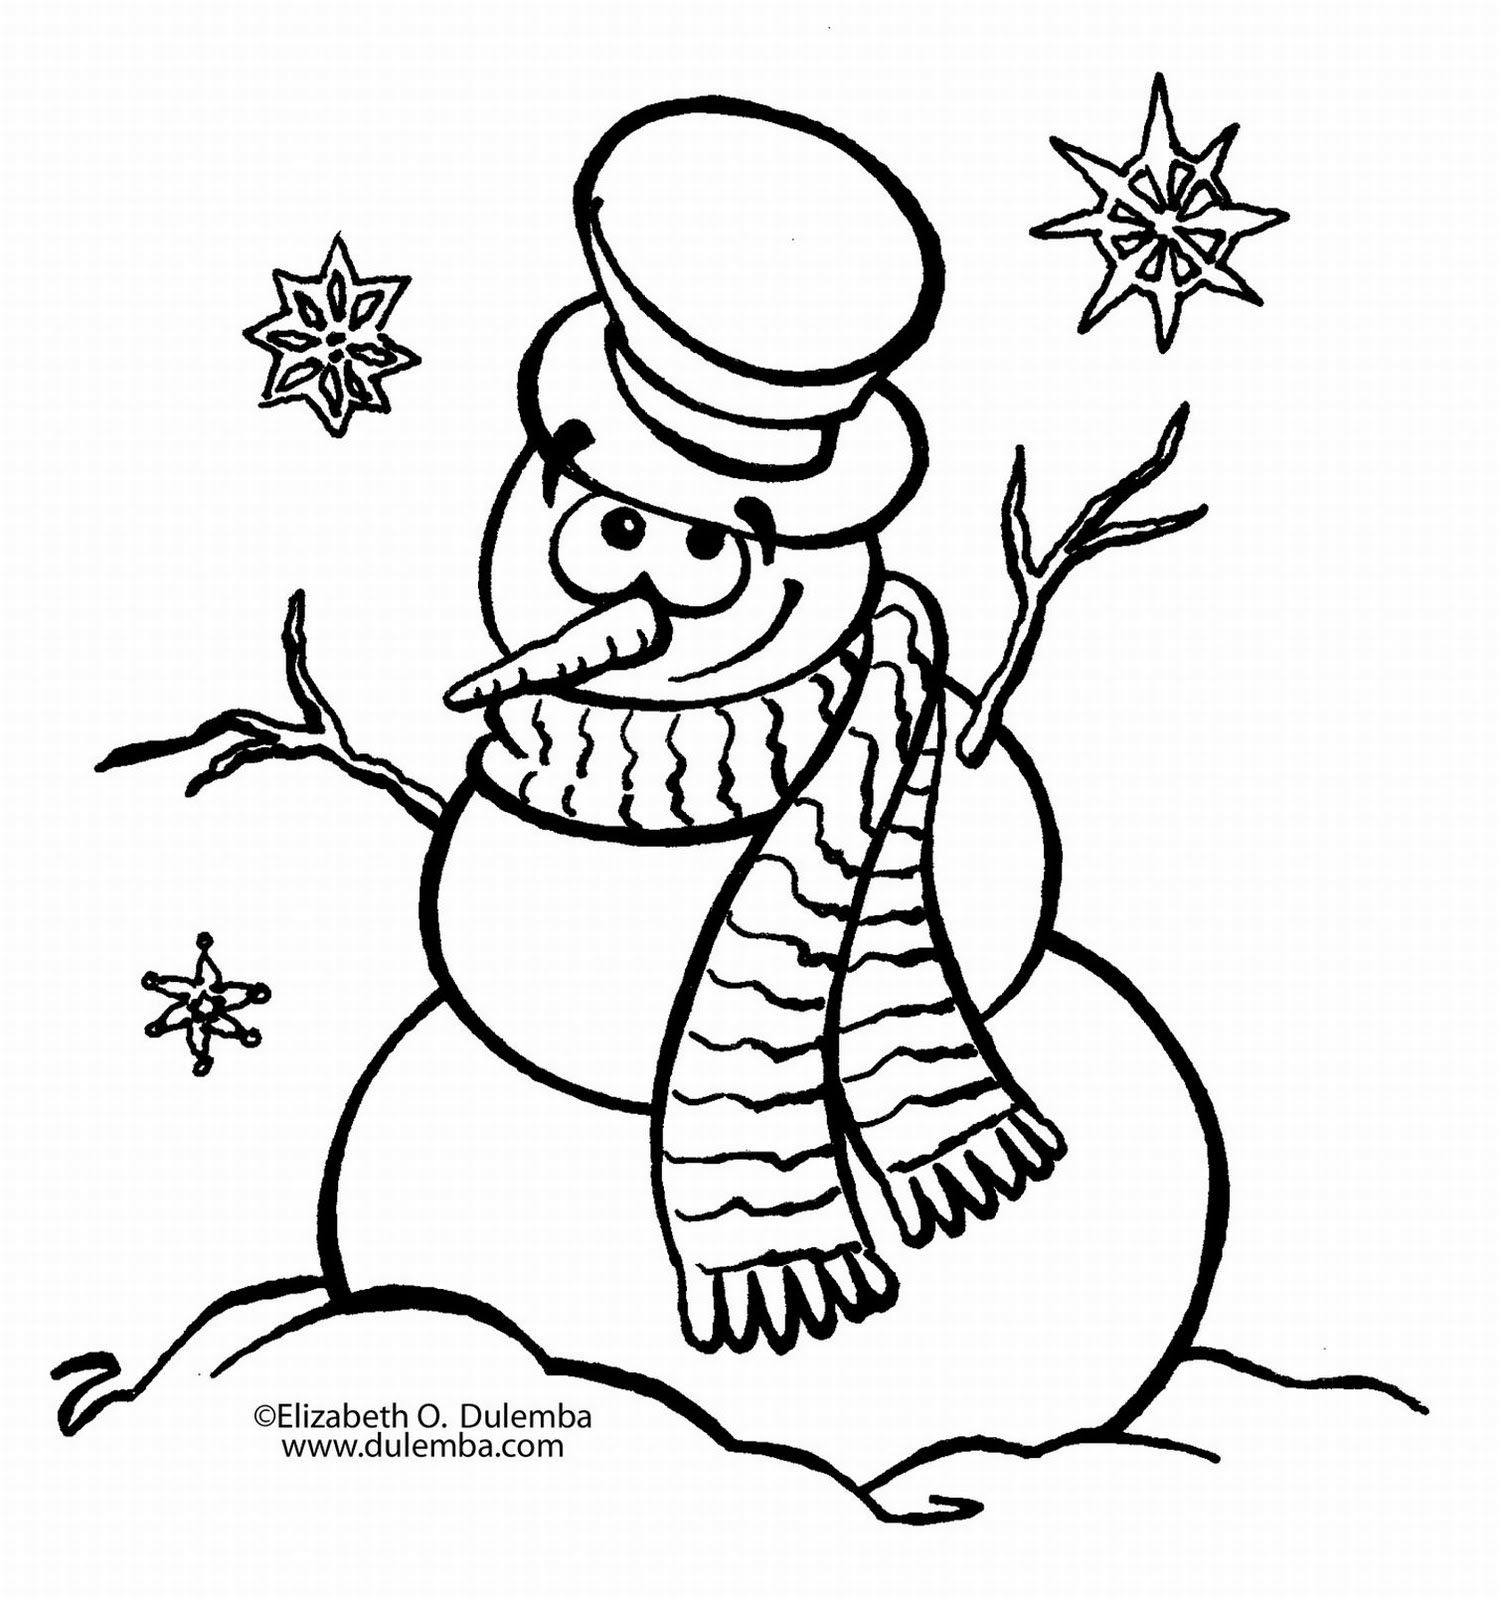 Blank coloring pages to print | coloring pages | Pinterest | Snowman ...